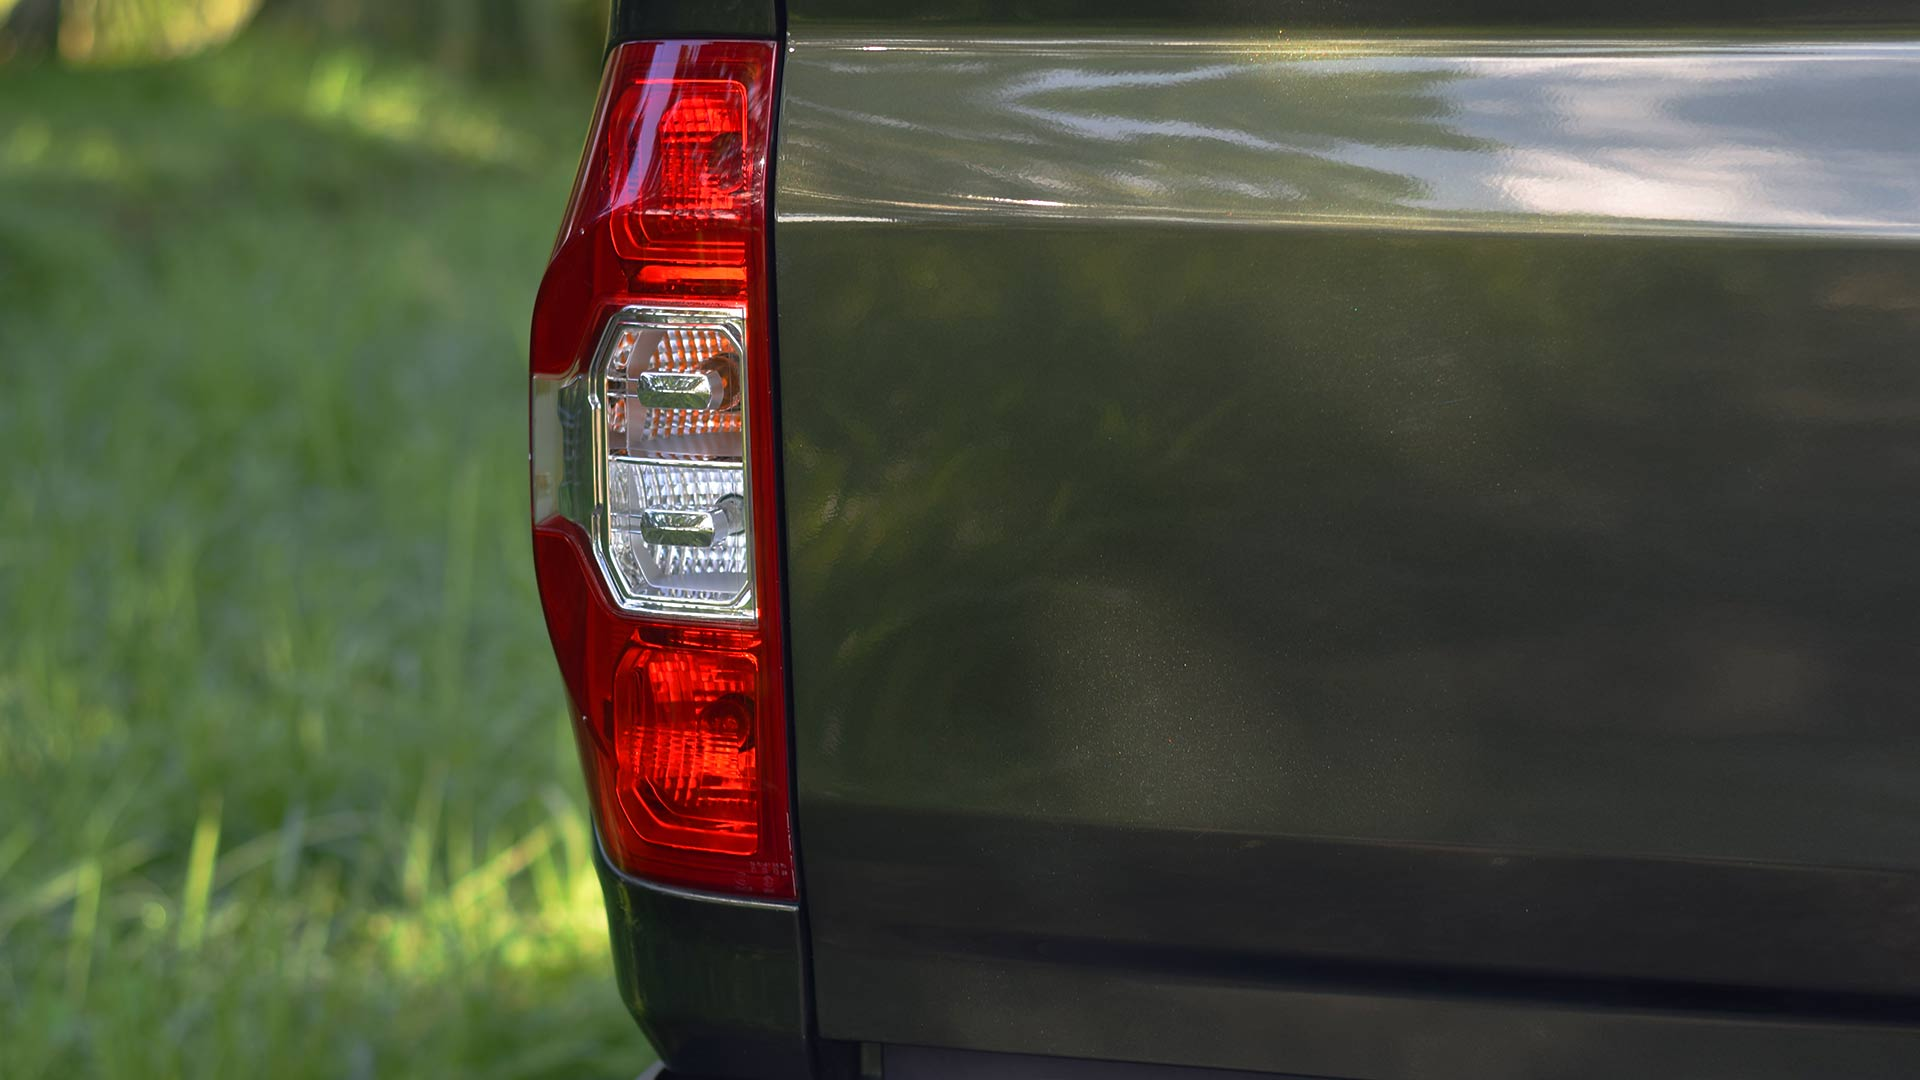 The Maxus T60 tail light right